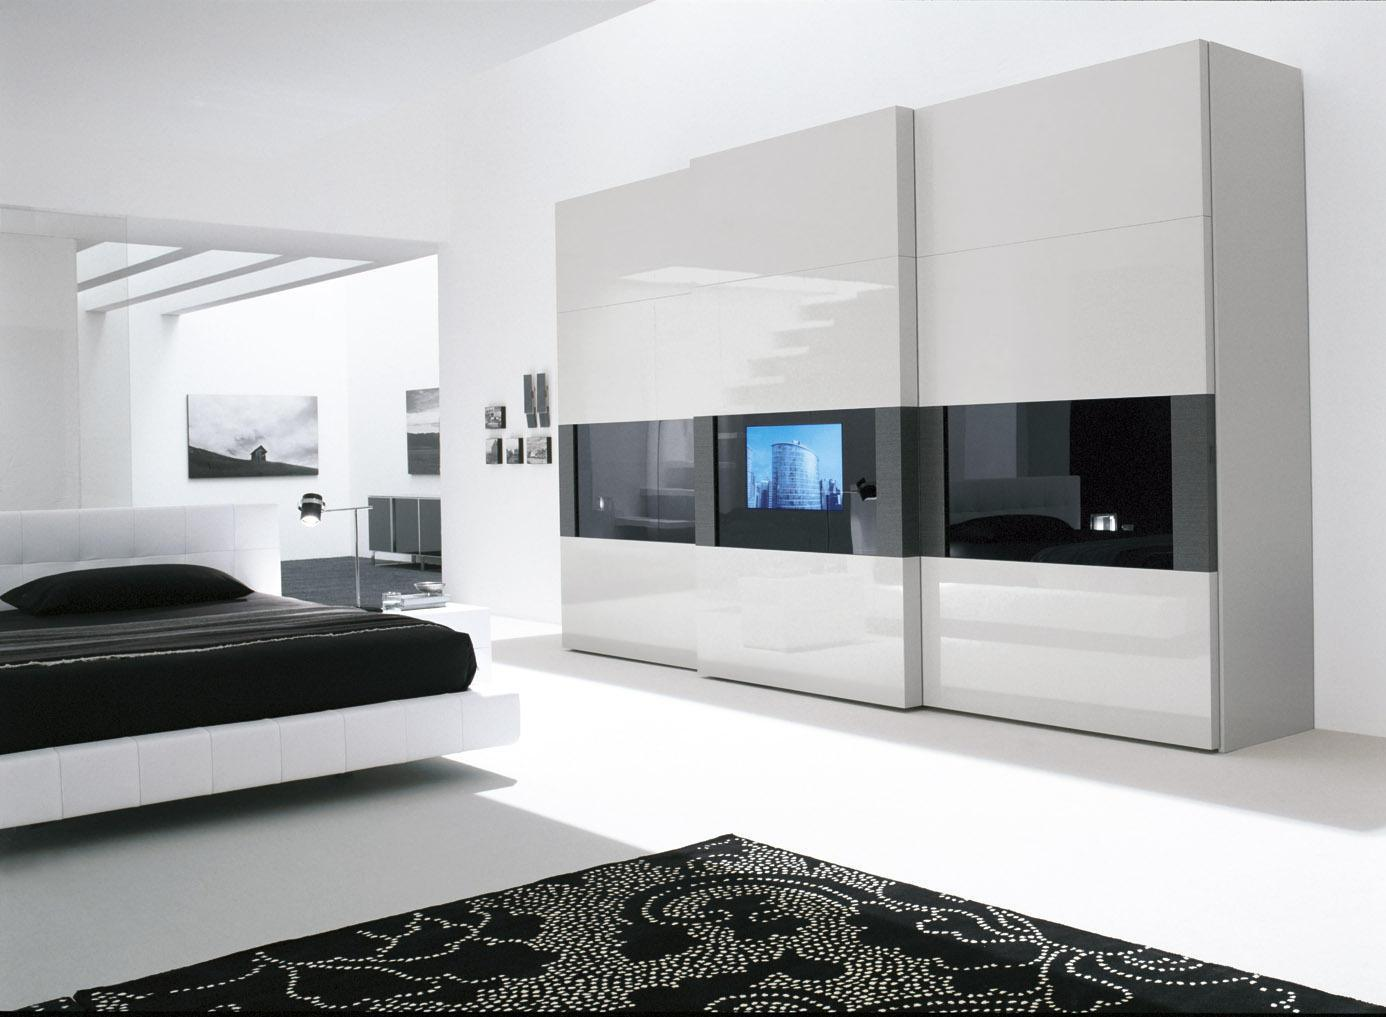 Bedroom Furniture Modern Design 25 best ideas about contemporary bedroom on pinterest black walls black painted walls and minimalist picture frames Modern Design Bedroom Furniturewardrobe With Sliding Door